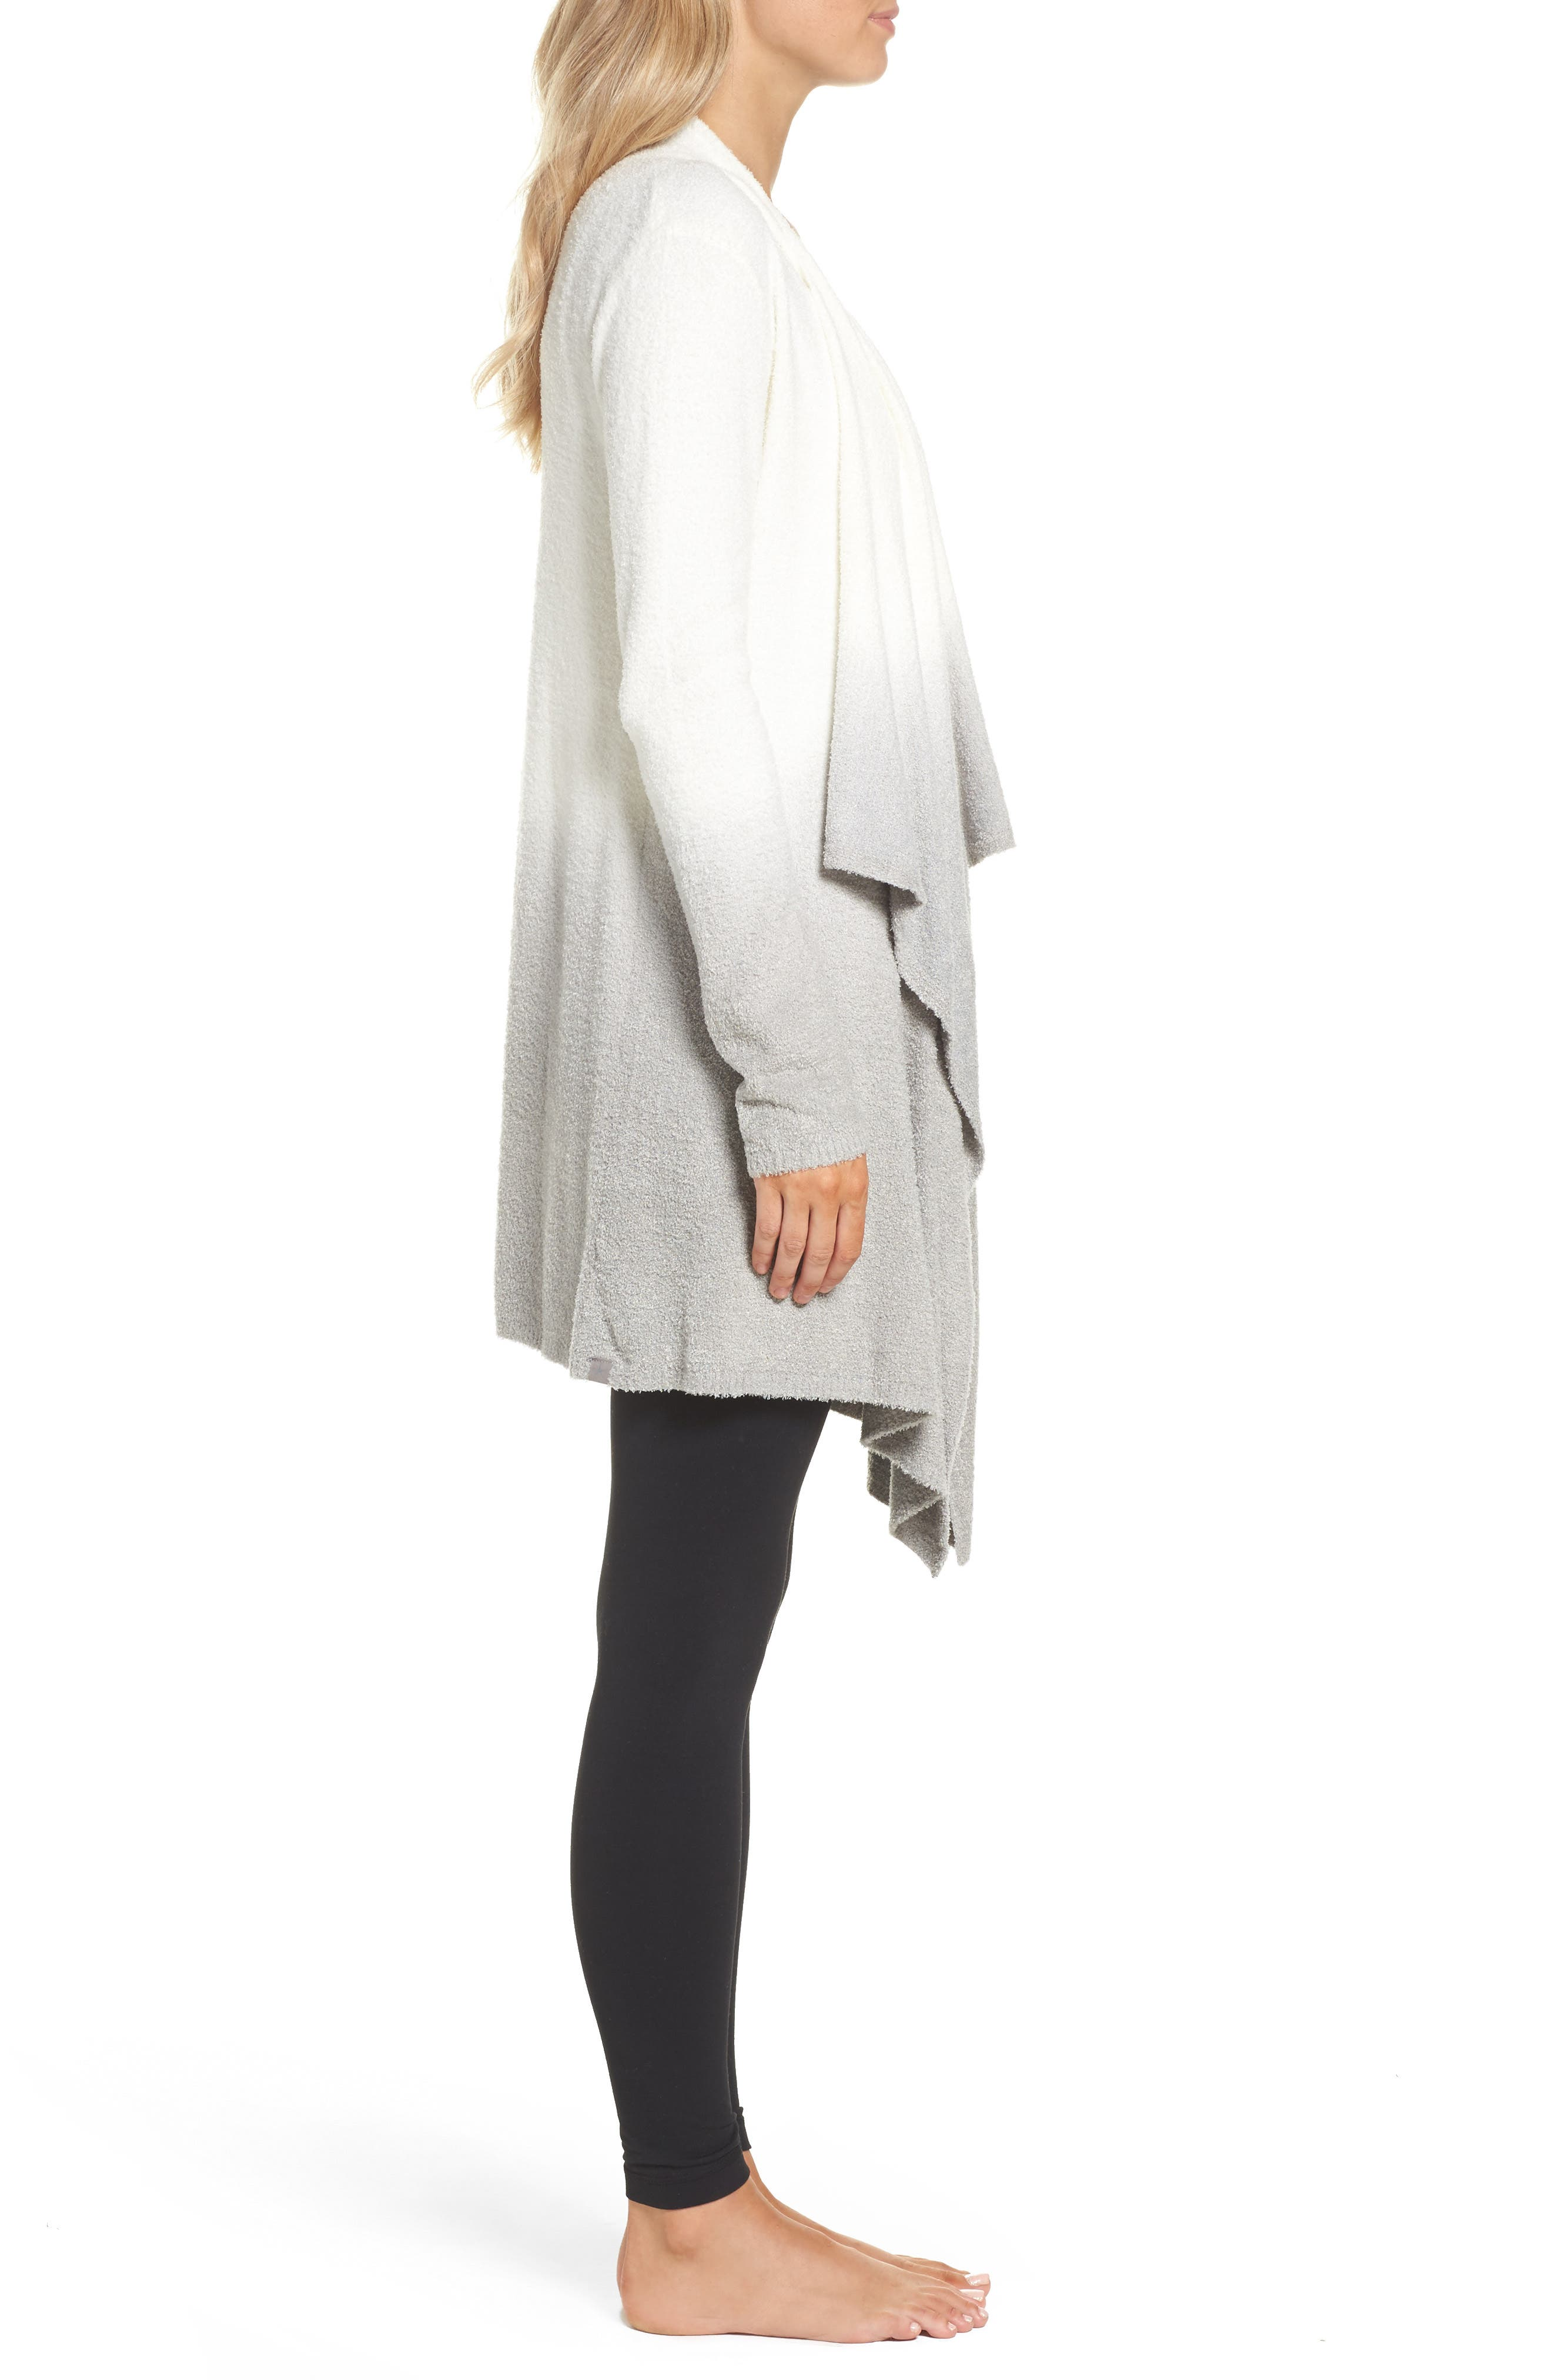 CozyChic Lite<sup>®</sup> Calypso Wrap Cardigan,                             Alternate thumbnail 3, color,                             White/ Pewter Ombre